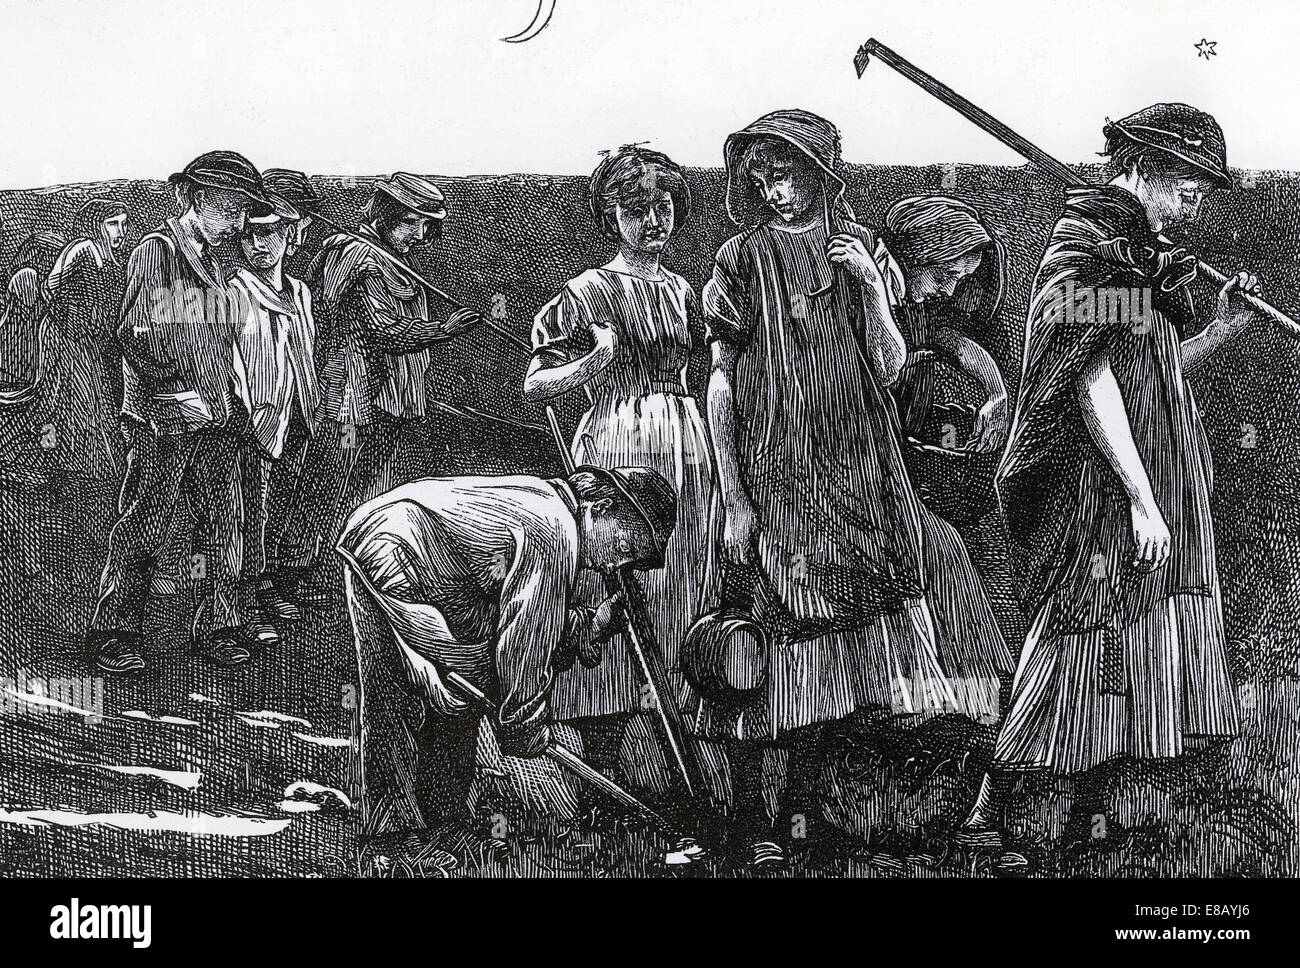 THE GANG CHILDREN Victorian children as farm labourers in a wood engraving by the Dalziel Brothers in 1868 - Stock Image